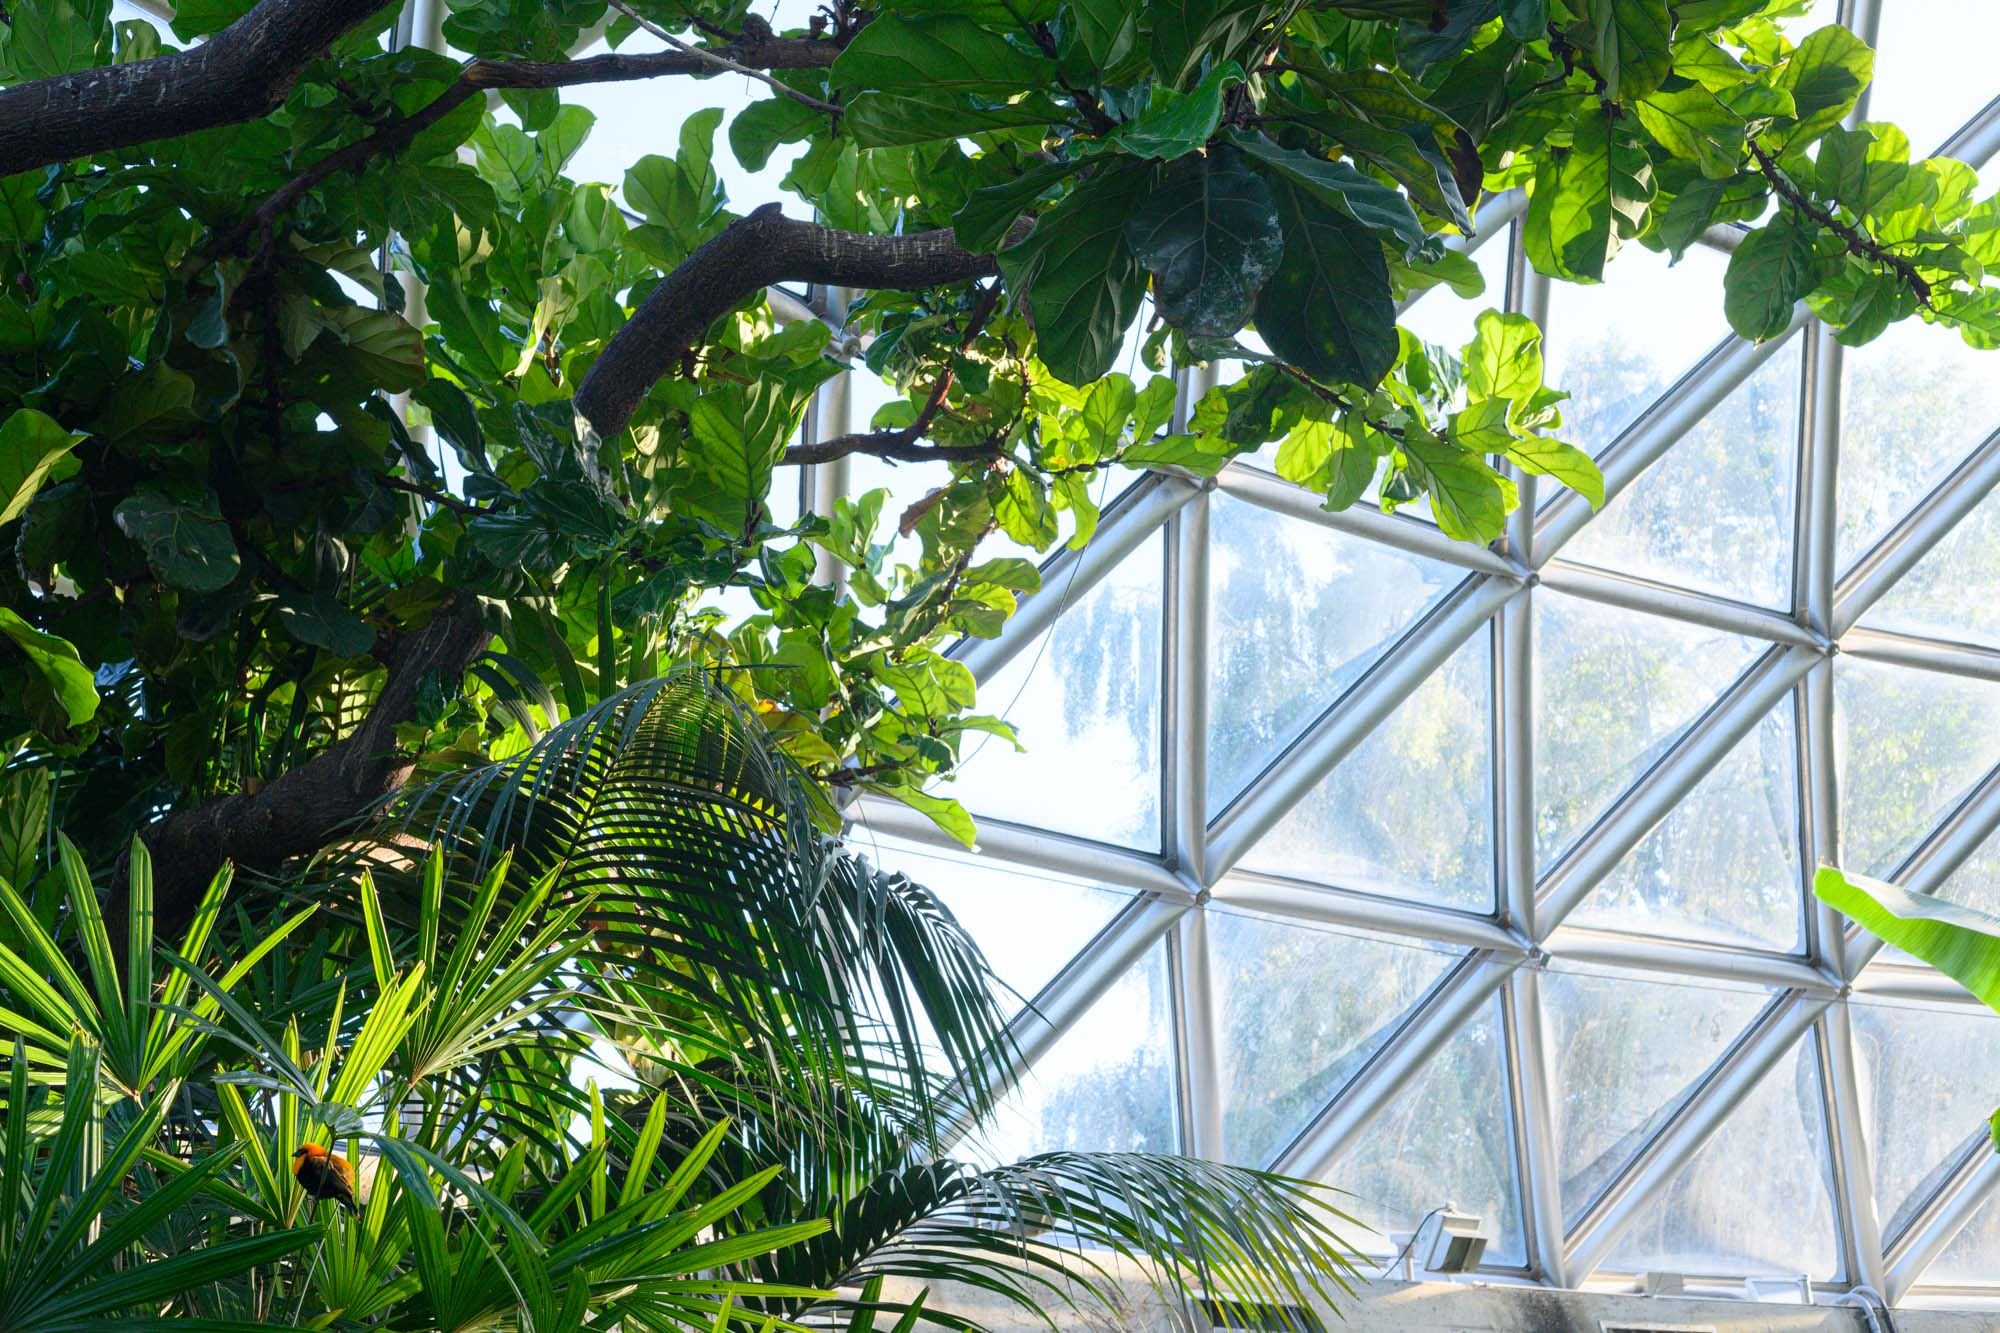 foliage and tropical birds at a conservatory in Vancouver, BC